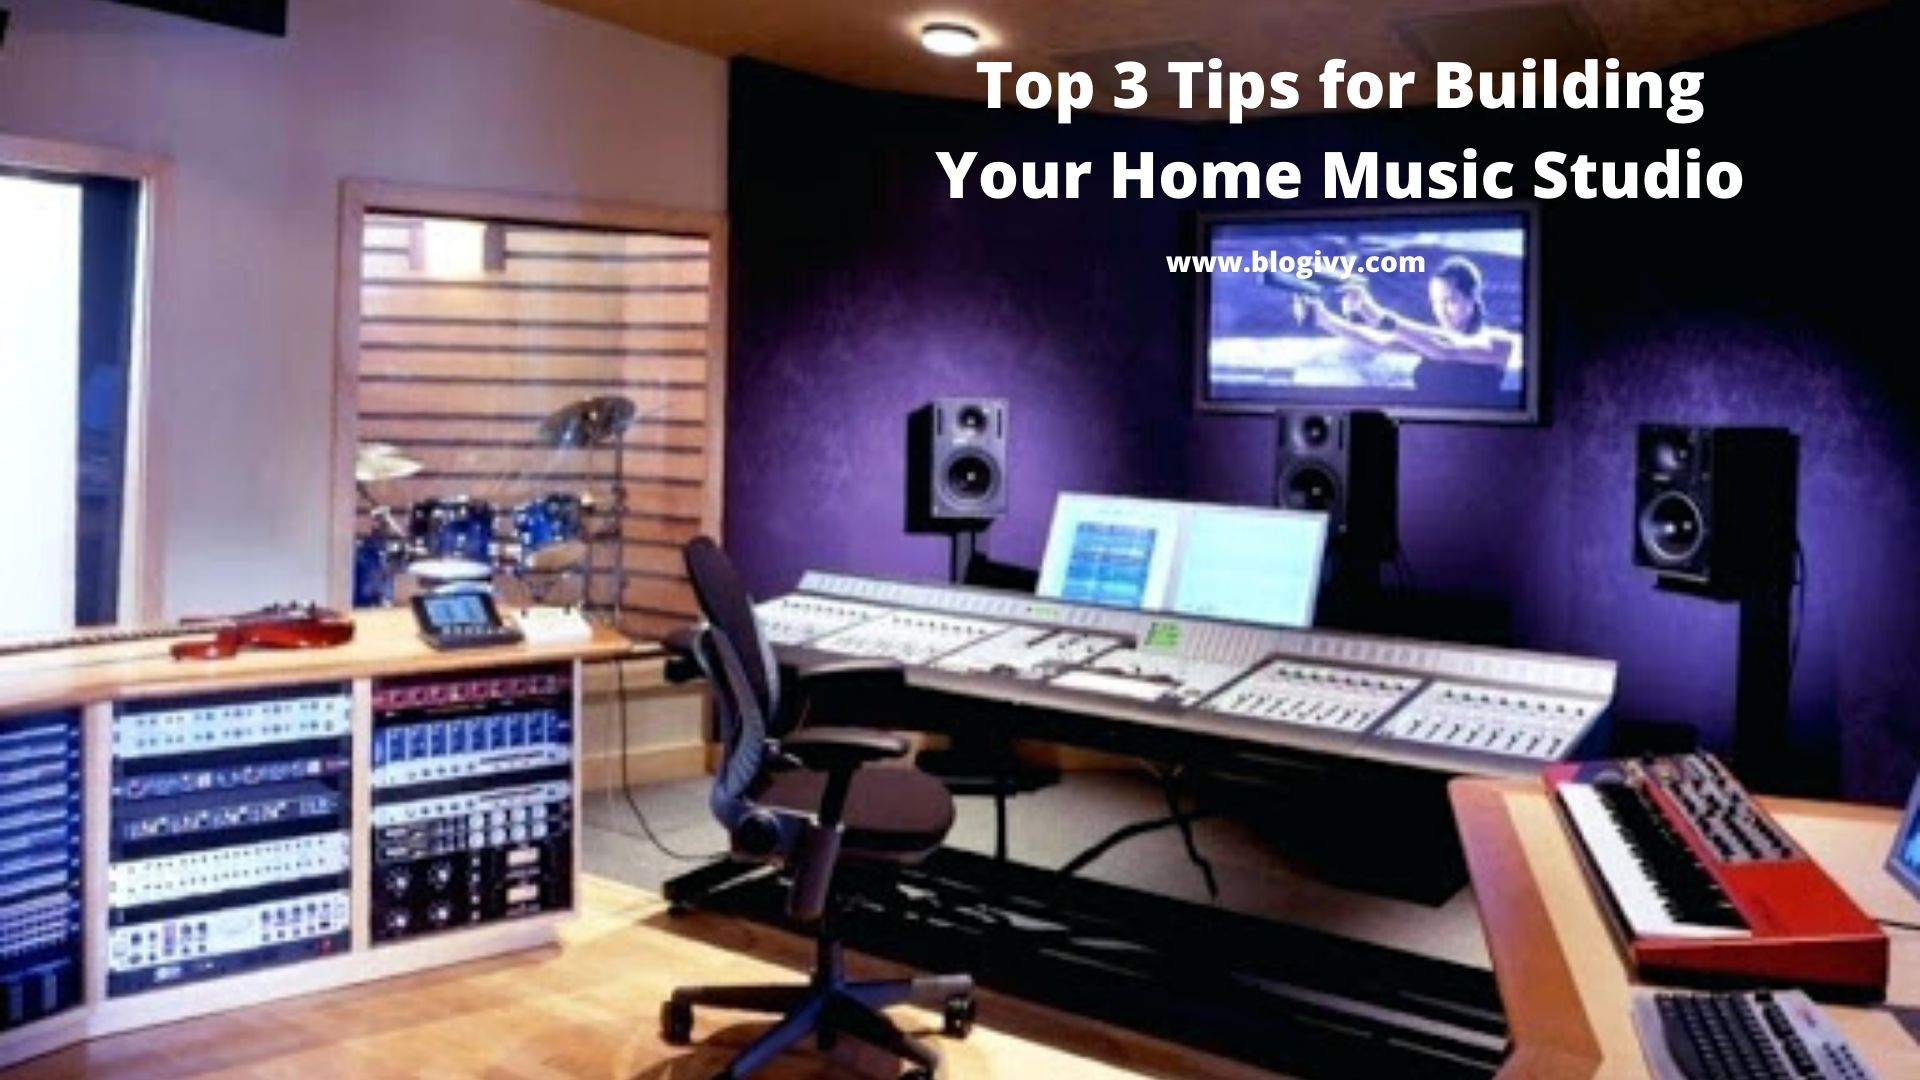 Top 3 Tips for Building Your Home Music Studio